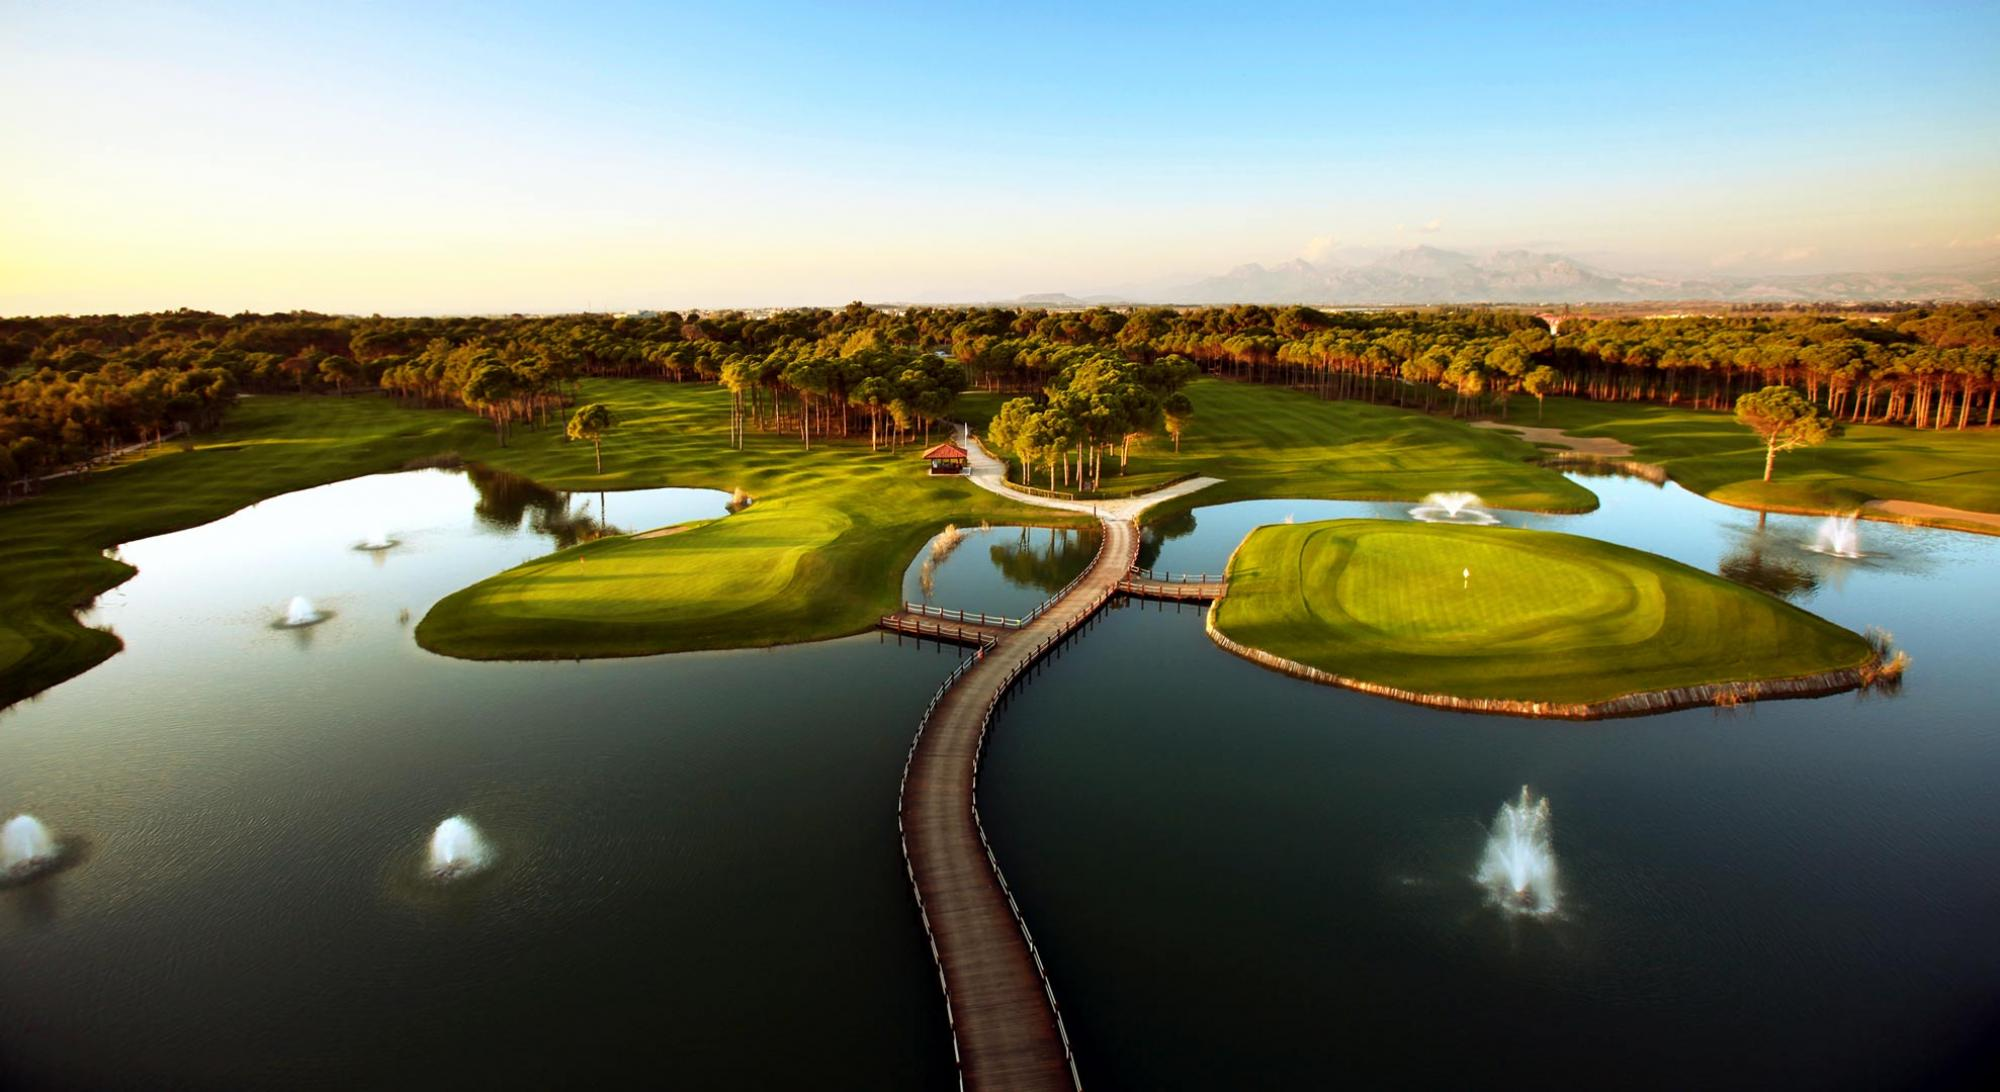 Sueno Golf Club has got some of the top golf course around Belek